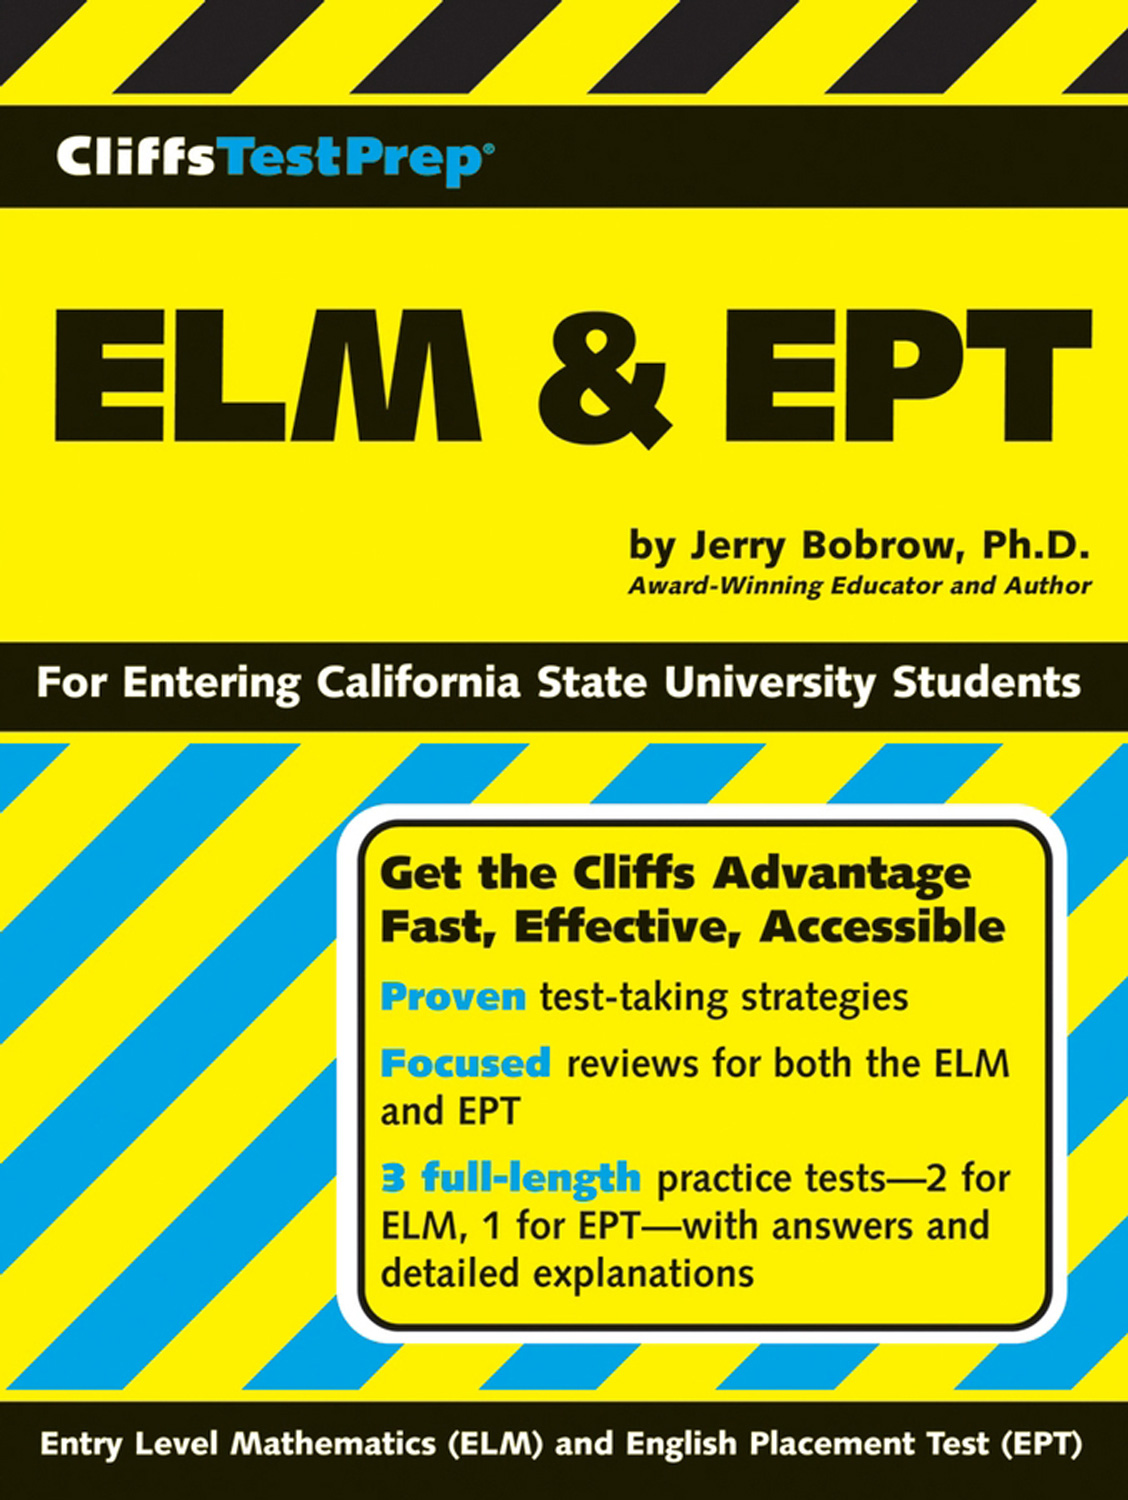 CliffsTestPrep ELM & EPT-9780471786788